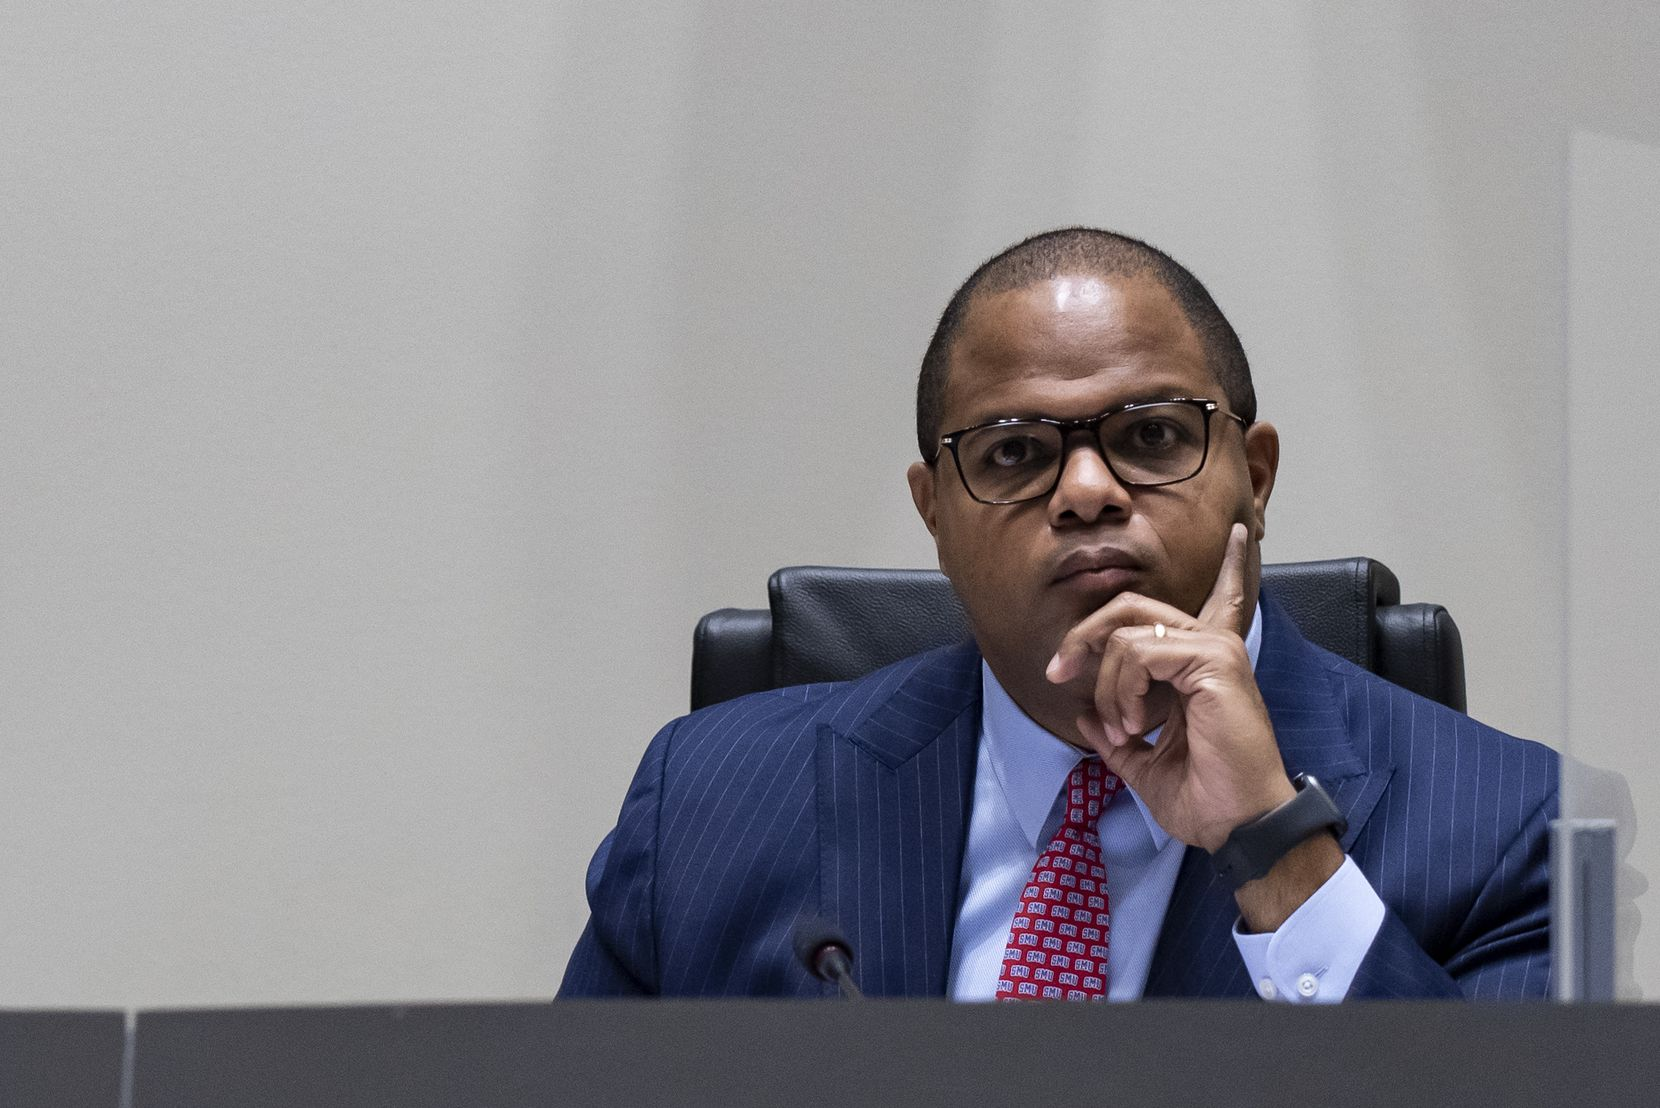 Dallas Mayor Eric Johnson listens to a member of the community address a concern during a city council meeting at Dallas City Hall on Wednesday, September 22, 2021 in Dallas, Texas. (Emil Lippe/Special Contributor)